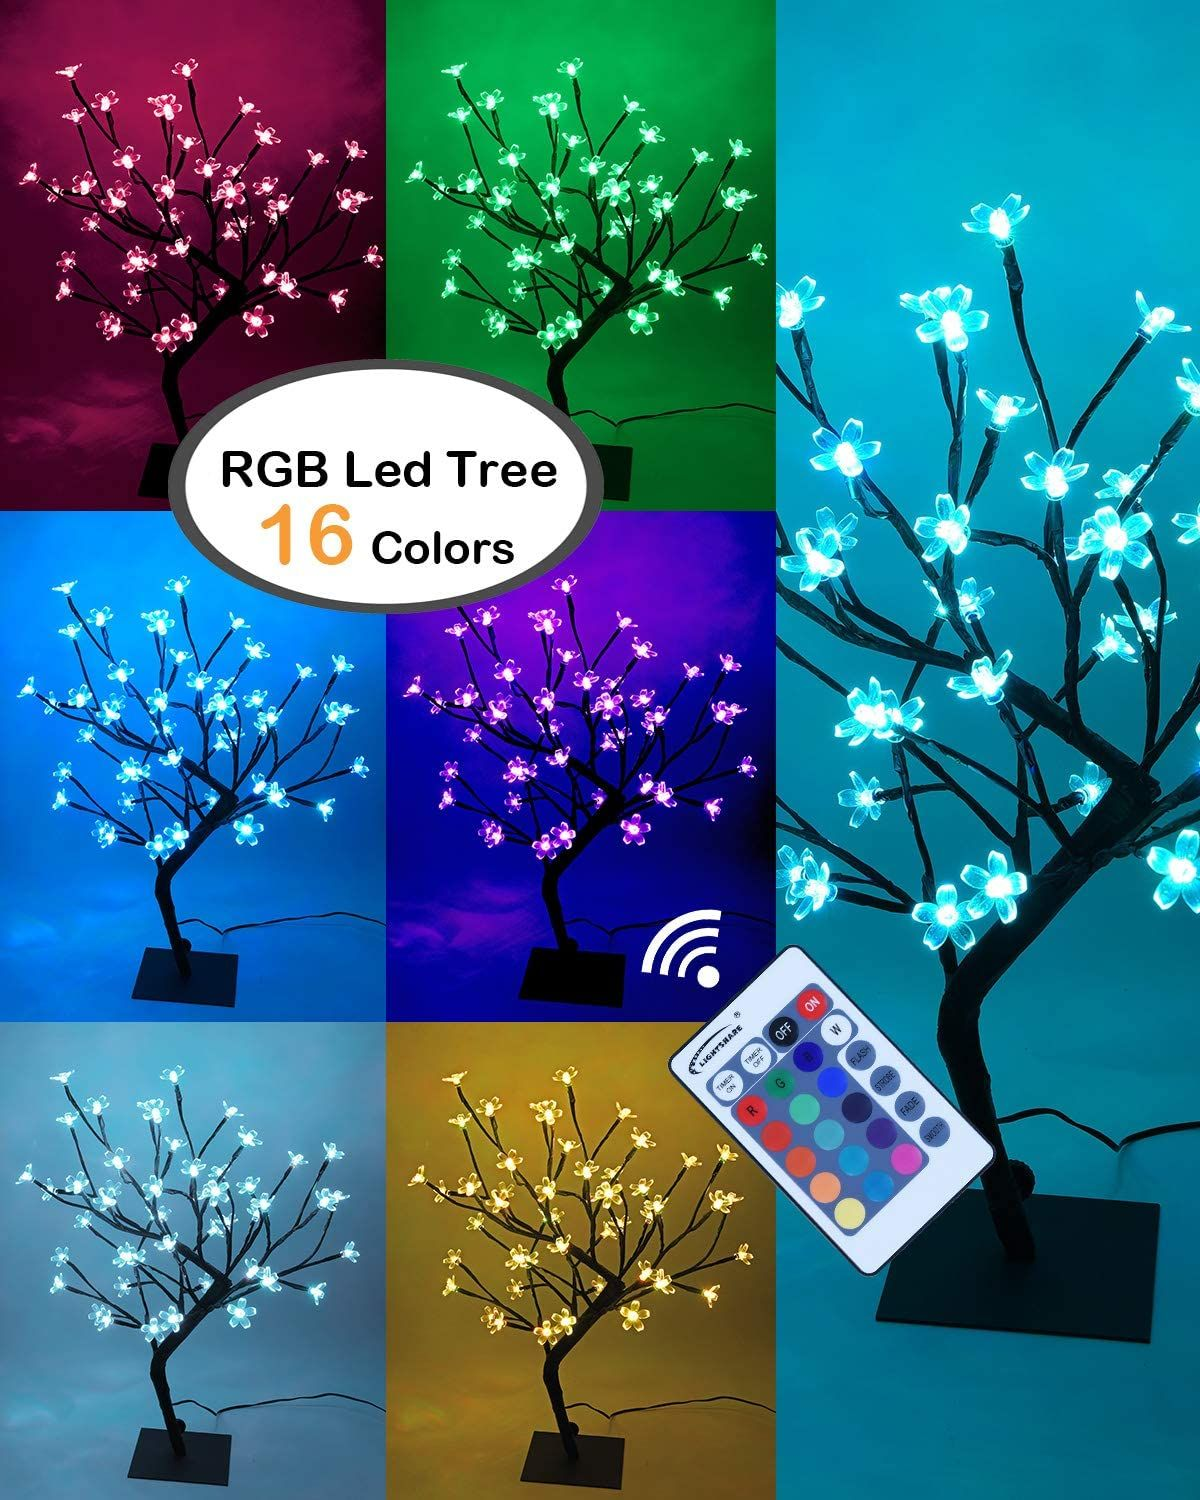 Lightshare 18inch Cherry Blossom Bonsai Tree 48 Led Lights Rgb With Remote Control 16 Color Cherry Blossom Bonsai Tree Cherry Blossom Light Tree Bonsai Tree